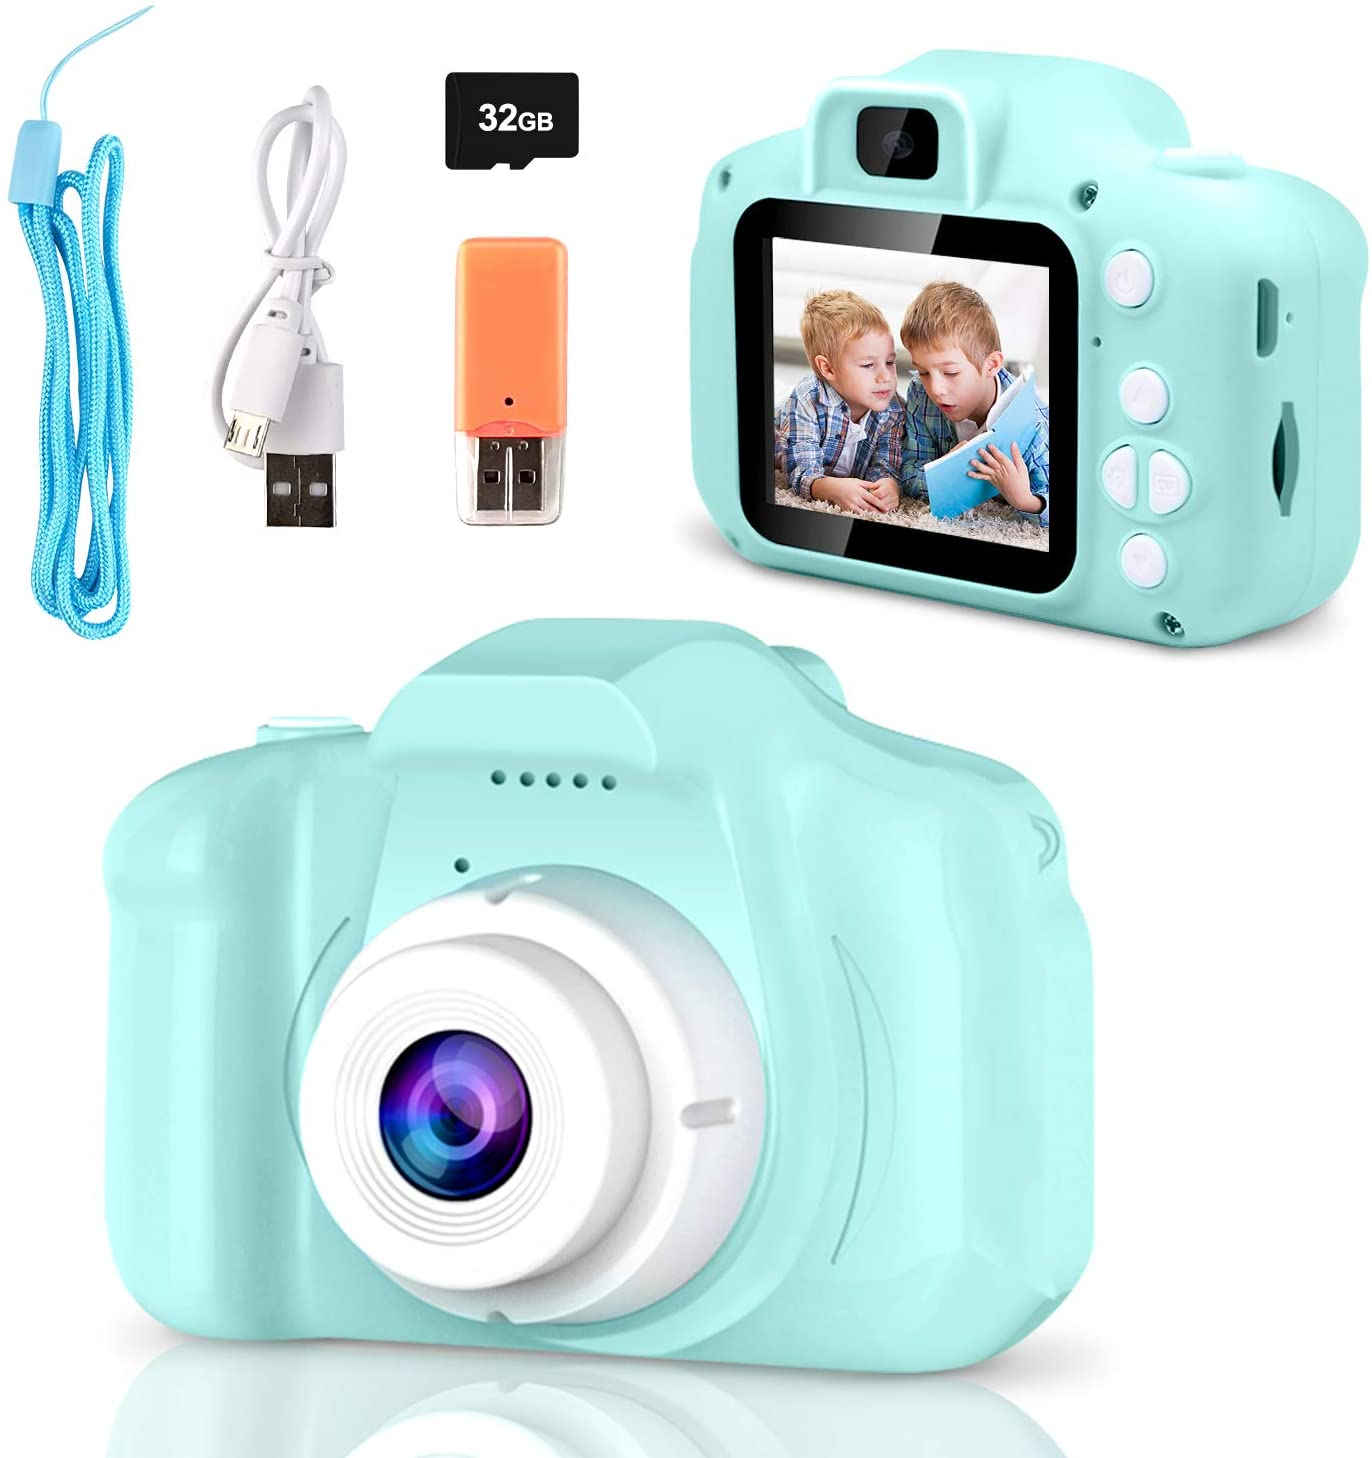 Upgrade Kids Camera, Toddler Camera Kids Selfie Camera with 32GB SD Card and Card Reader USB 2.0 D, HD Digital Video Cameras for Toddler Fantastic Gift for Boys Girls Age 3-12 Toy Camera (Green)